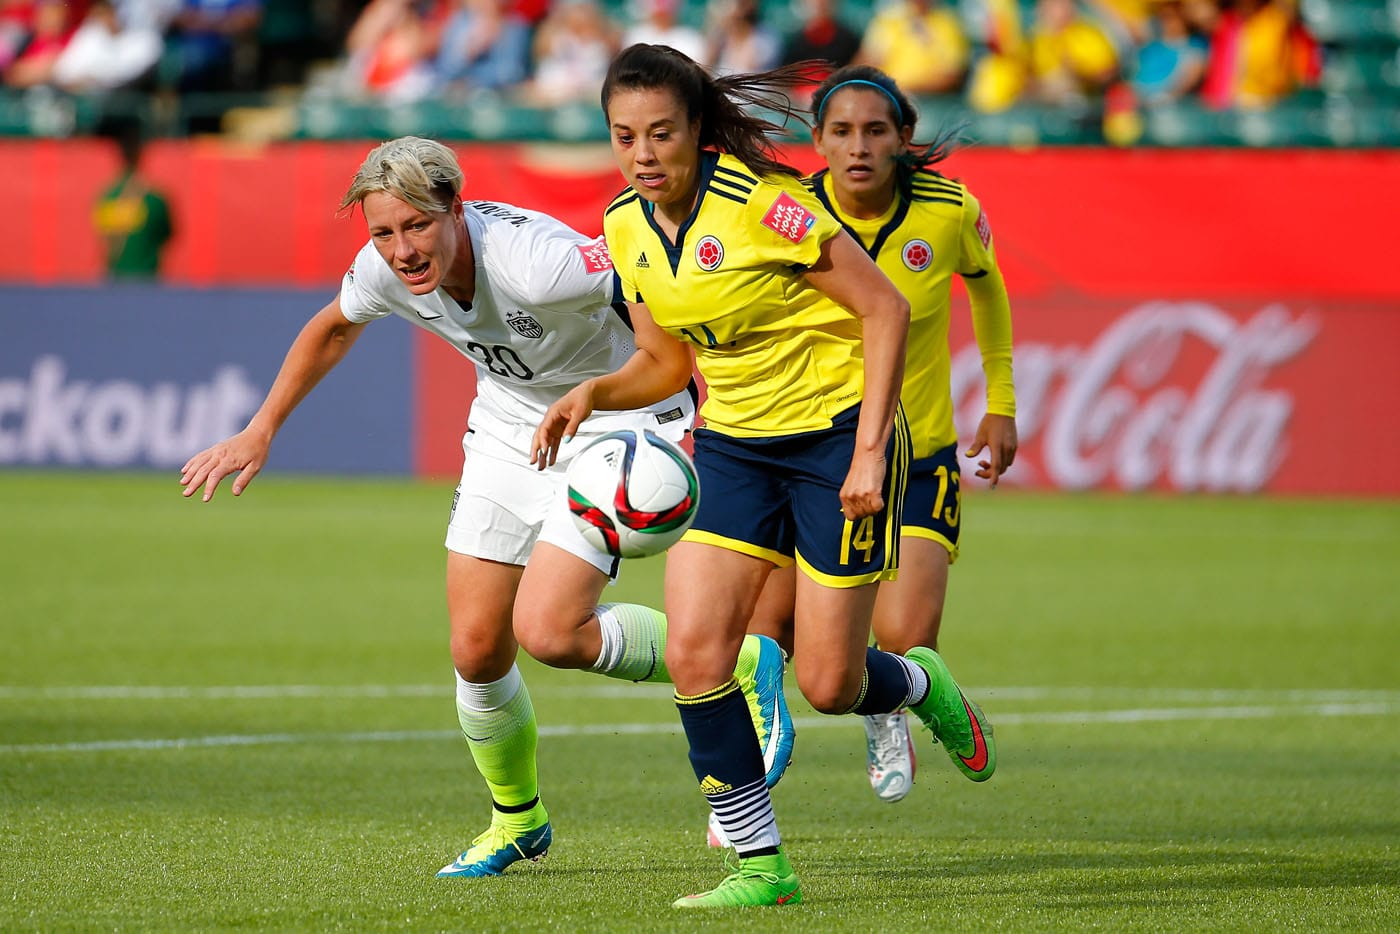 EDMONTON, AB - JUNE 22: Nataly Arias #14 of Colombia controls the ball against Abby Wambach #20 of the United States in the FIFA Women's World Cup 2015 Round of 16 match at Commonwealth Stadium on June 22, 2015 in Edmonton, Canada. (Photo by Kevin C. Cox/Getty Images) ORG XMIT: 528451983